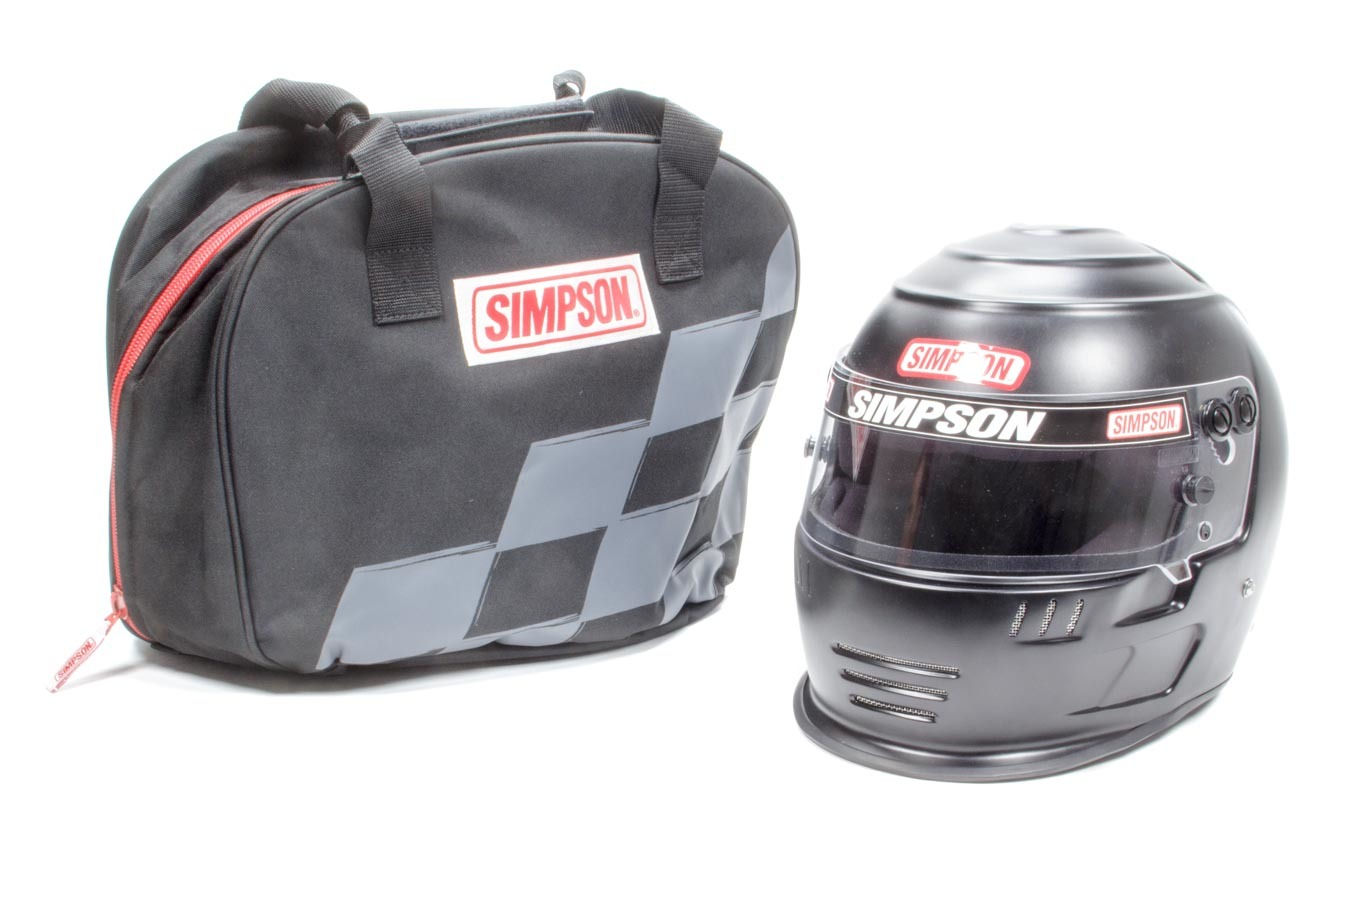 Simpson 6707188 Helmet, Speedway Shark, Snell SA2015, Head and Neck Support Ready, Flat Black, Size 7-1/8, Each